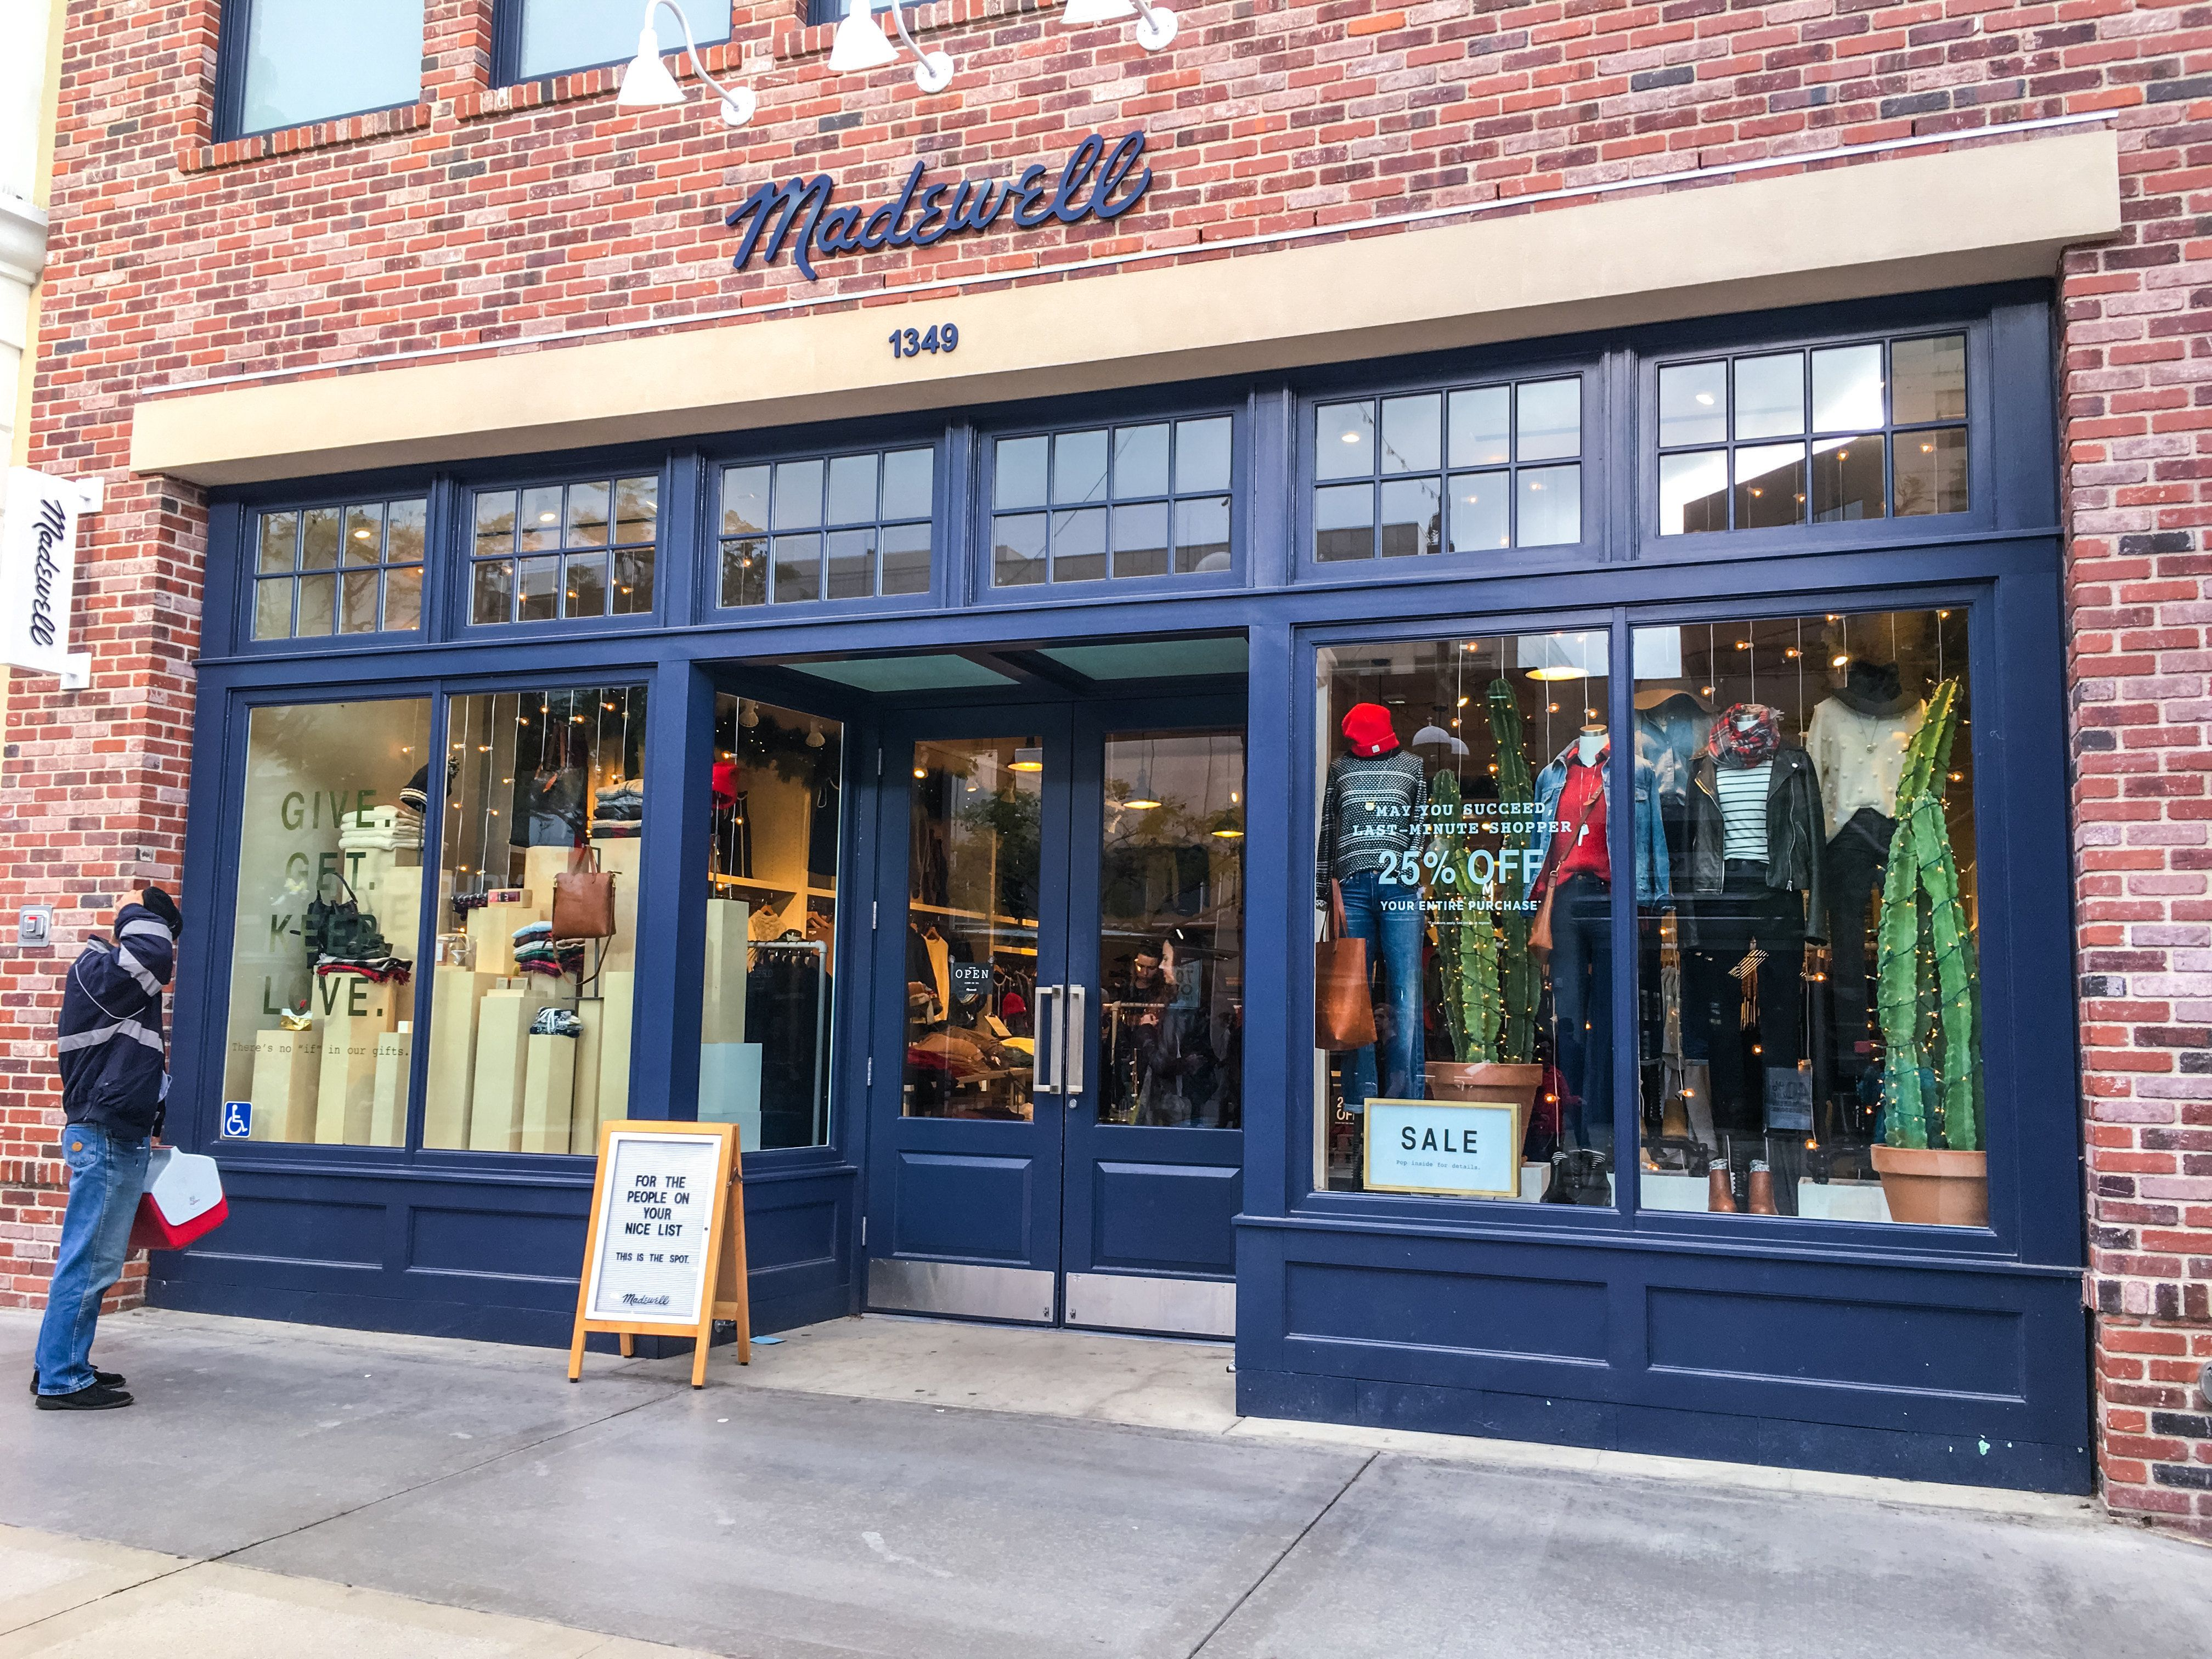 Santa Monica, USA  - December 22, 2015: Xmas sales at Madewell store, Santa Monica, USA. Man looking at window display. Third street promenade.